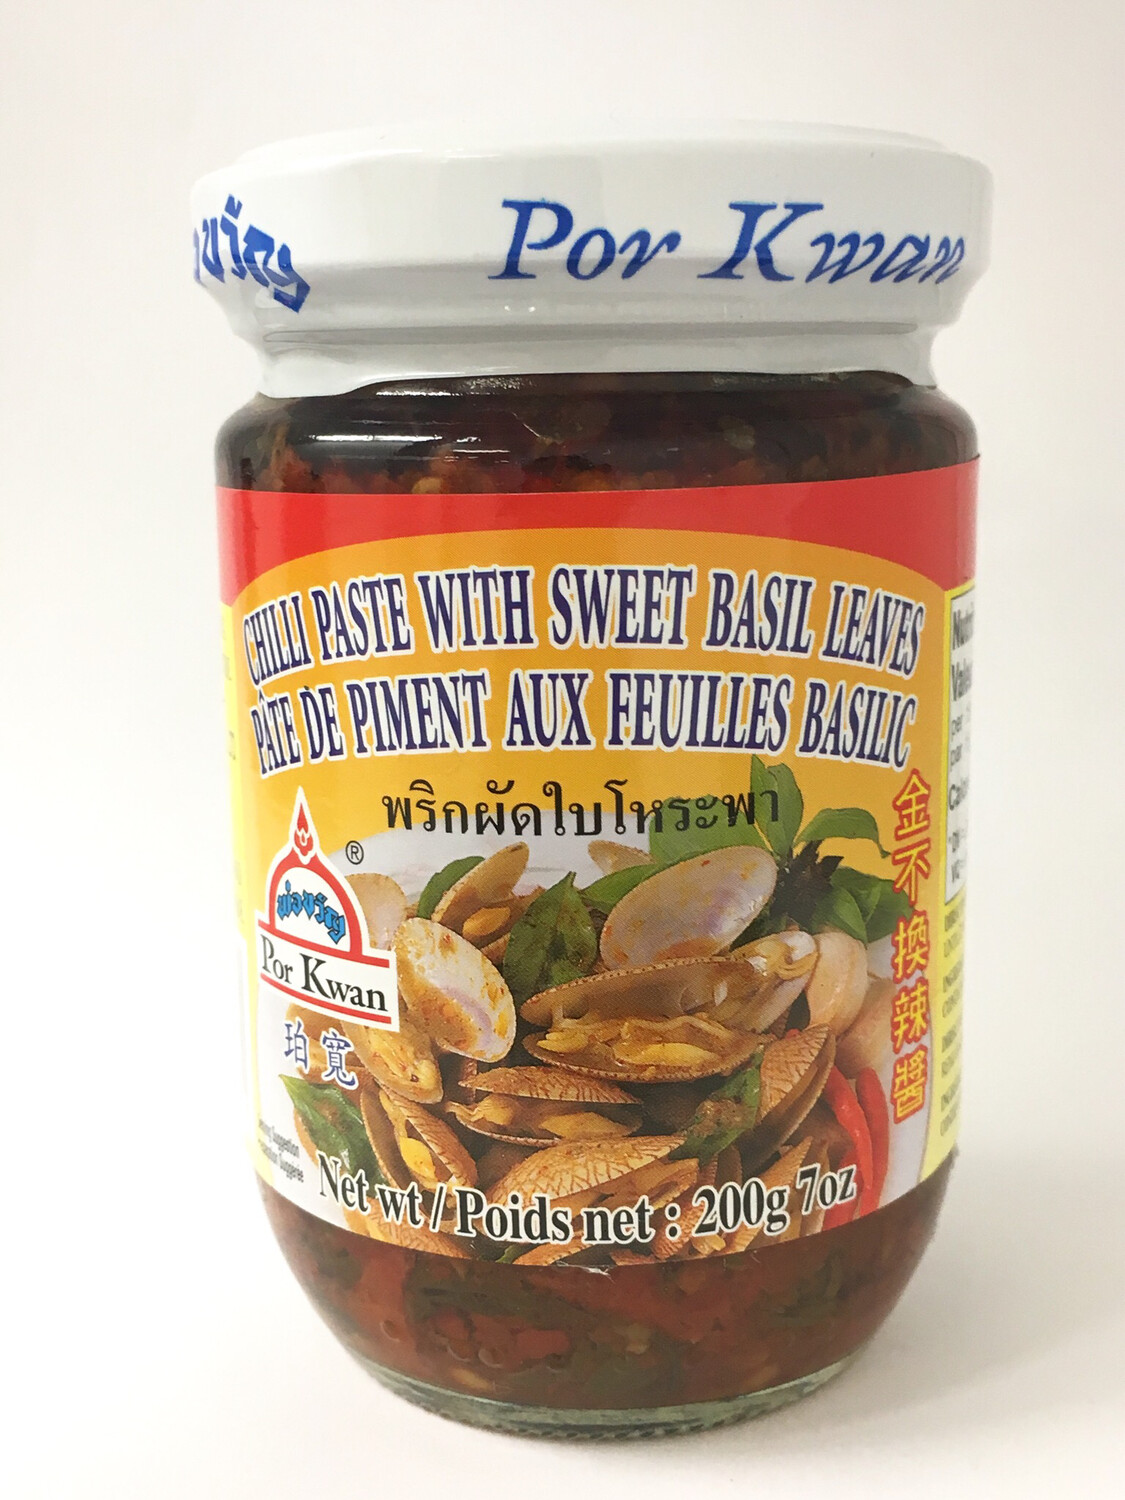 PORKWAN INSTANT CHILI PASTE WITH SWEET BASIL LEAVE 24X225G